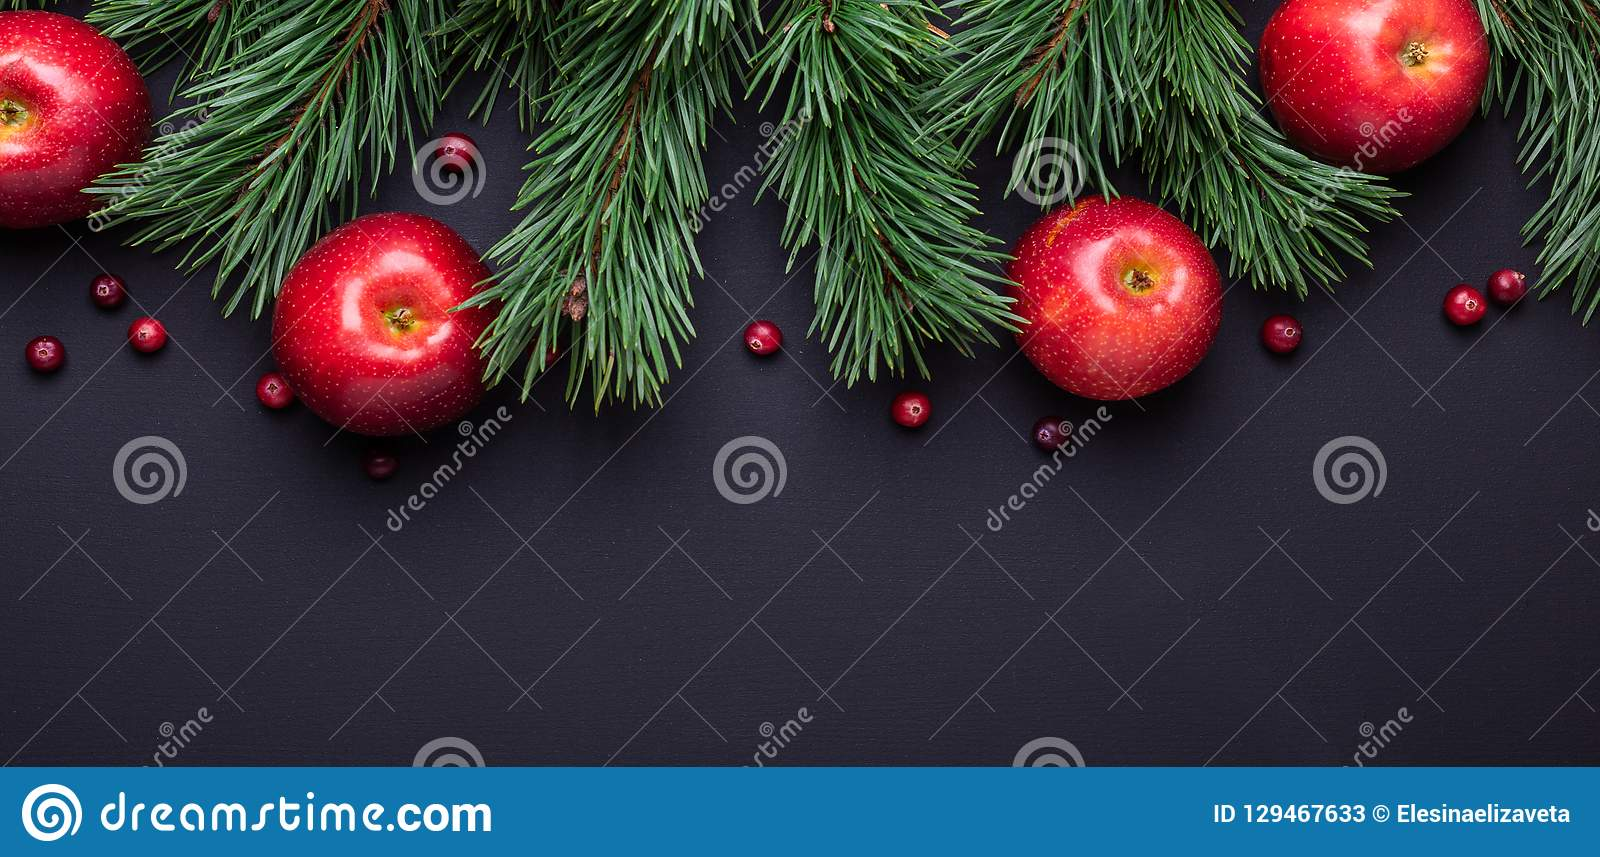 Christmas background with tree branches, red apples and cranberries. Dark wooden table